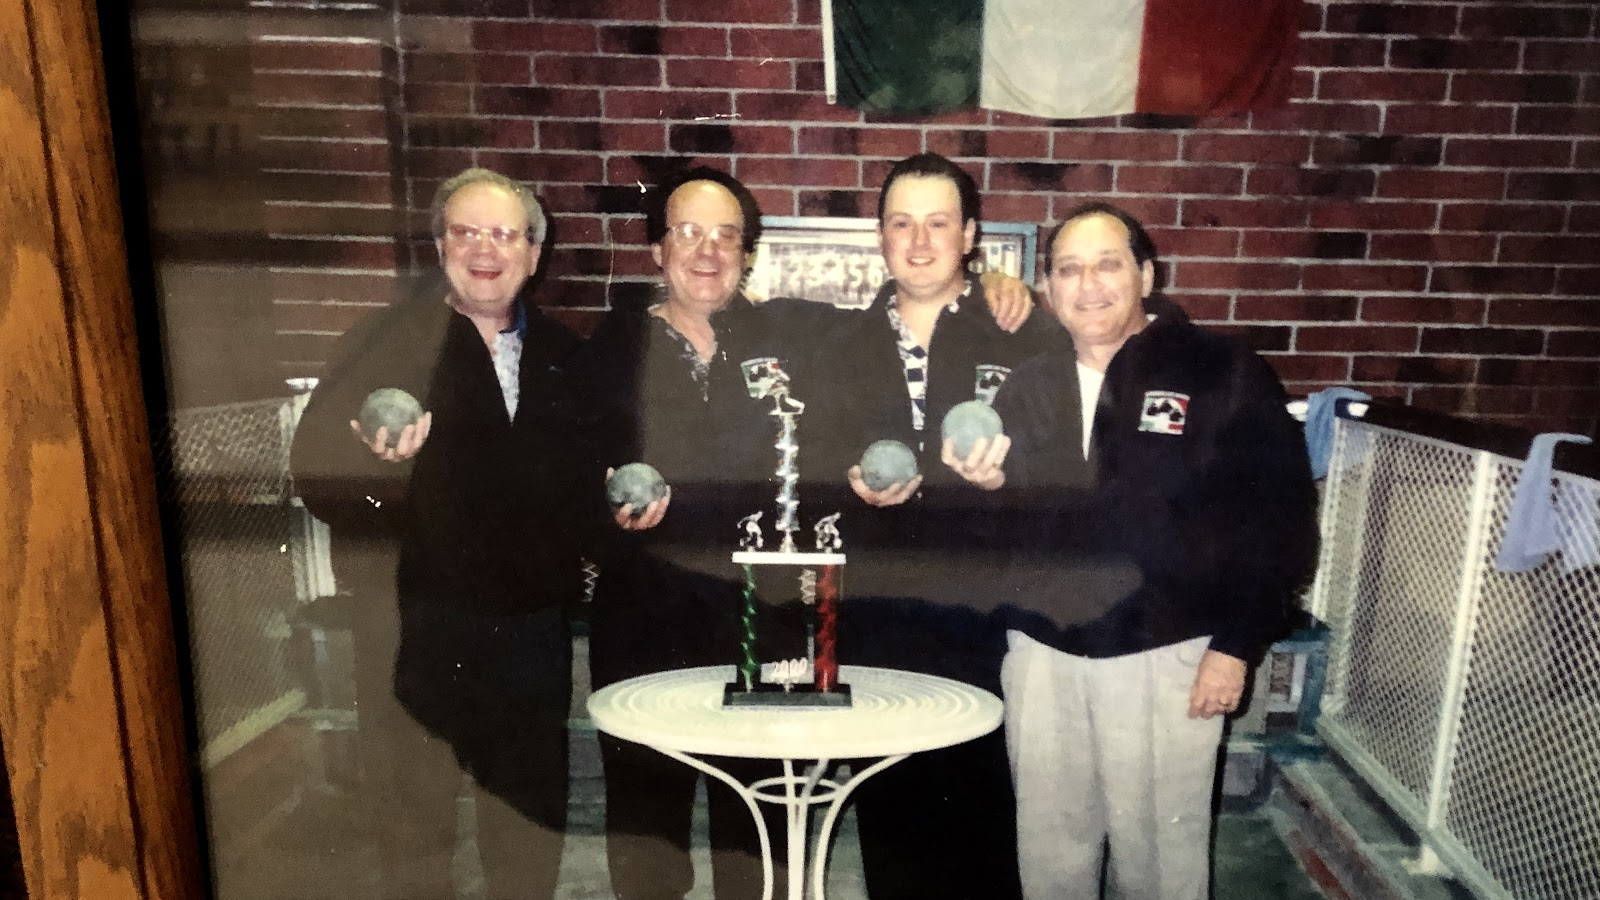 A photo of four happy bocce champions from the past.